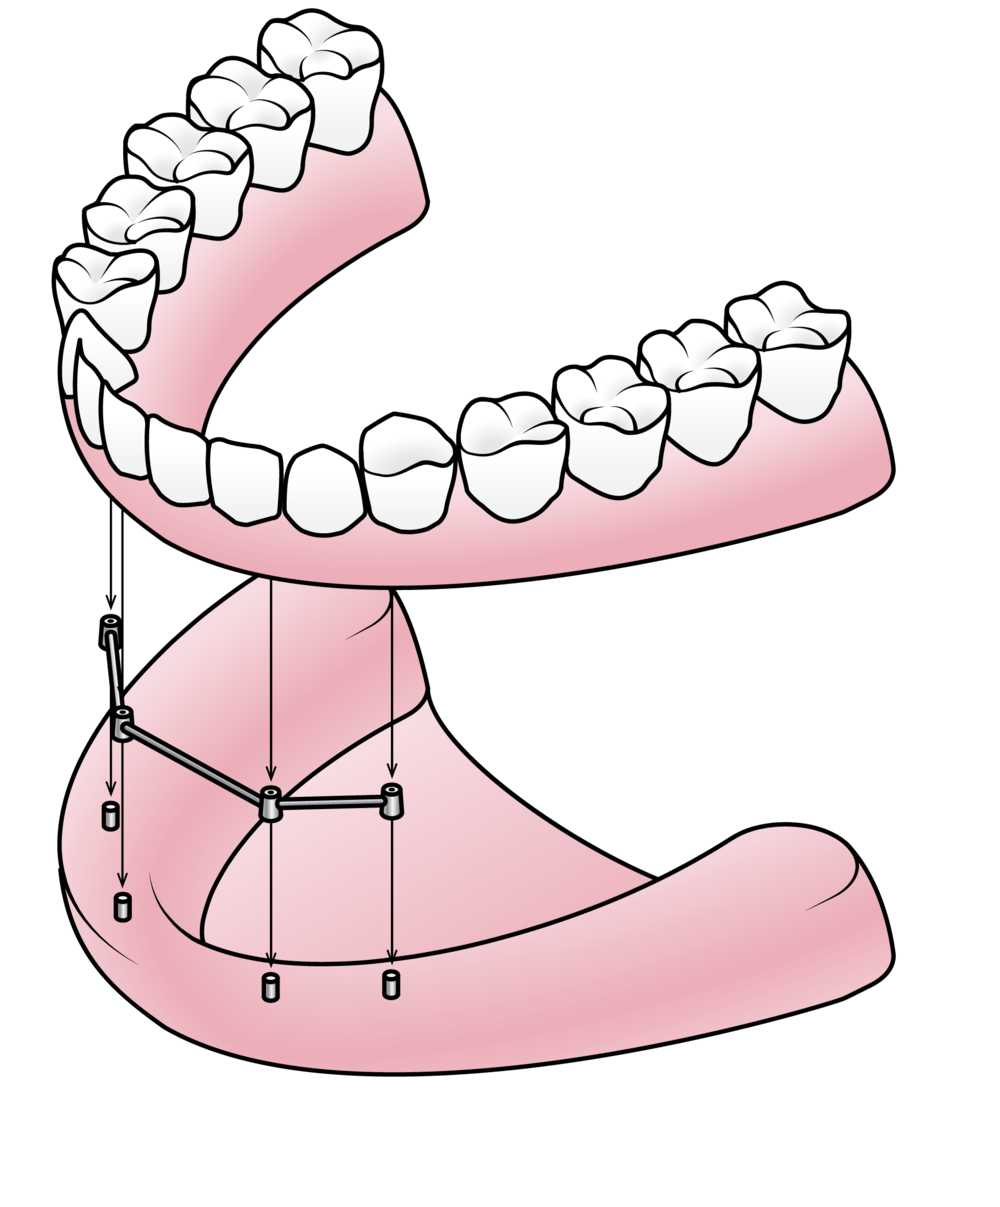 clipart black and white download Drawing tooth diagram. Full partial dentures valley